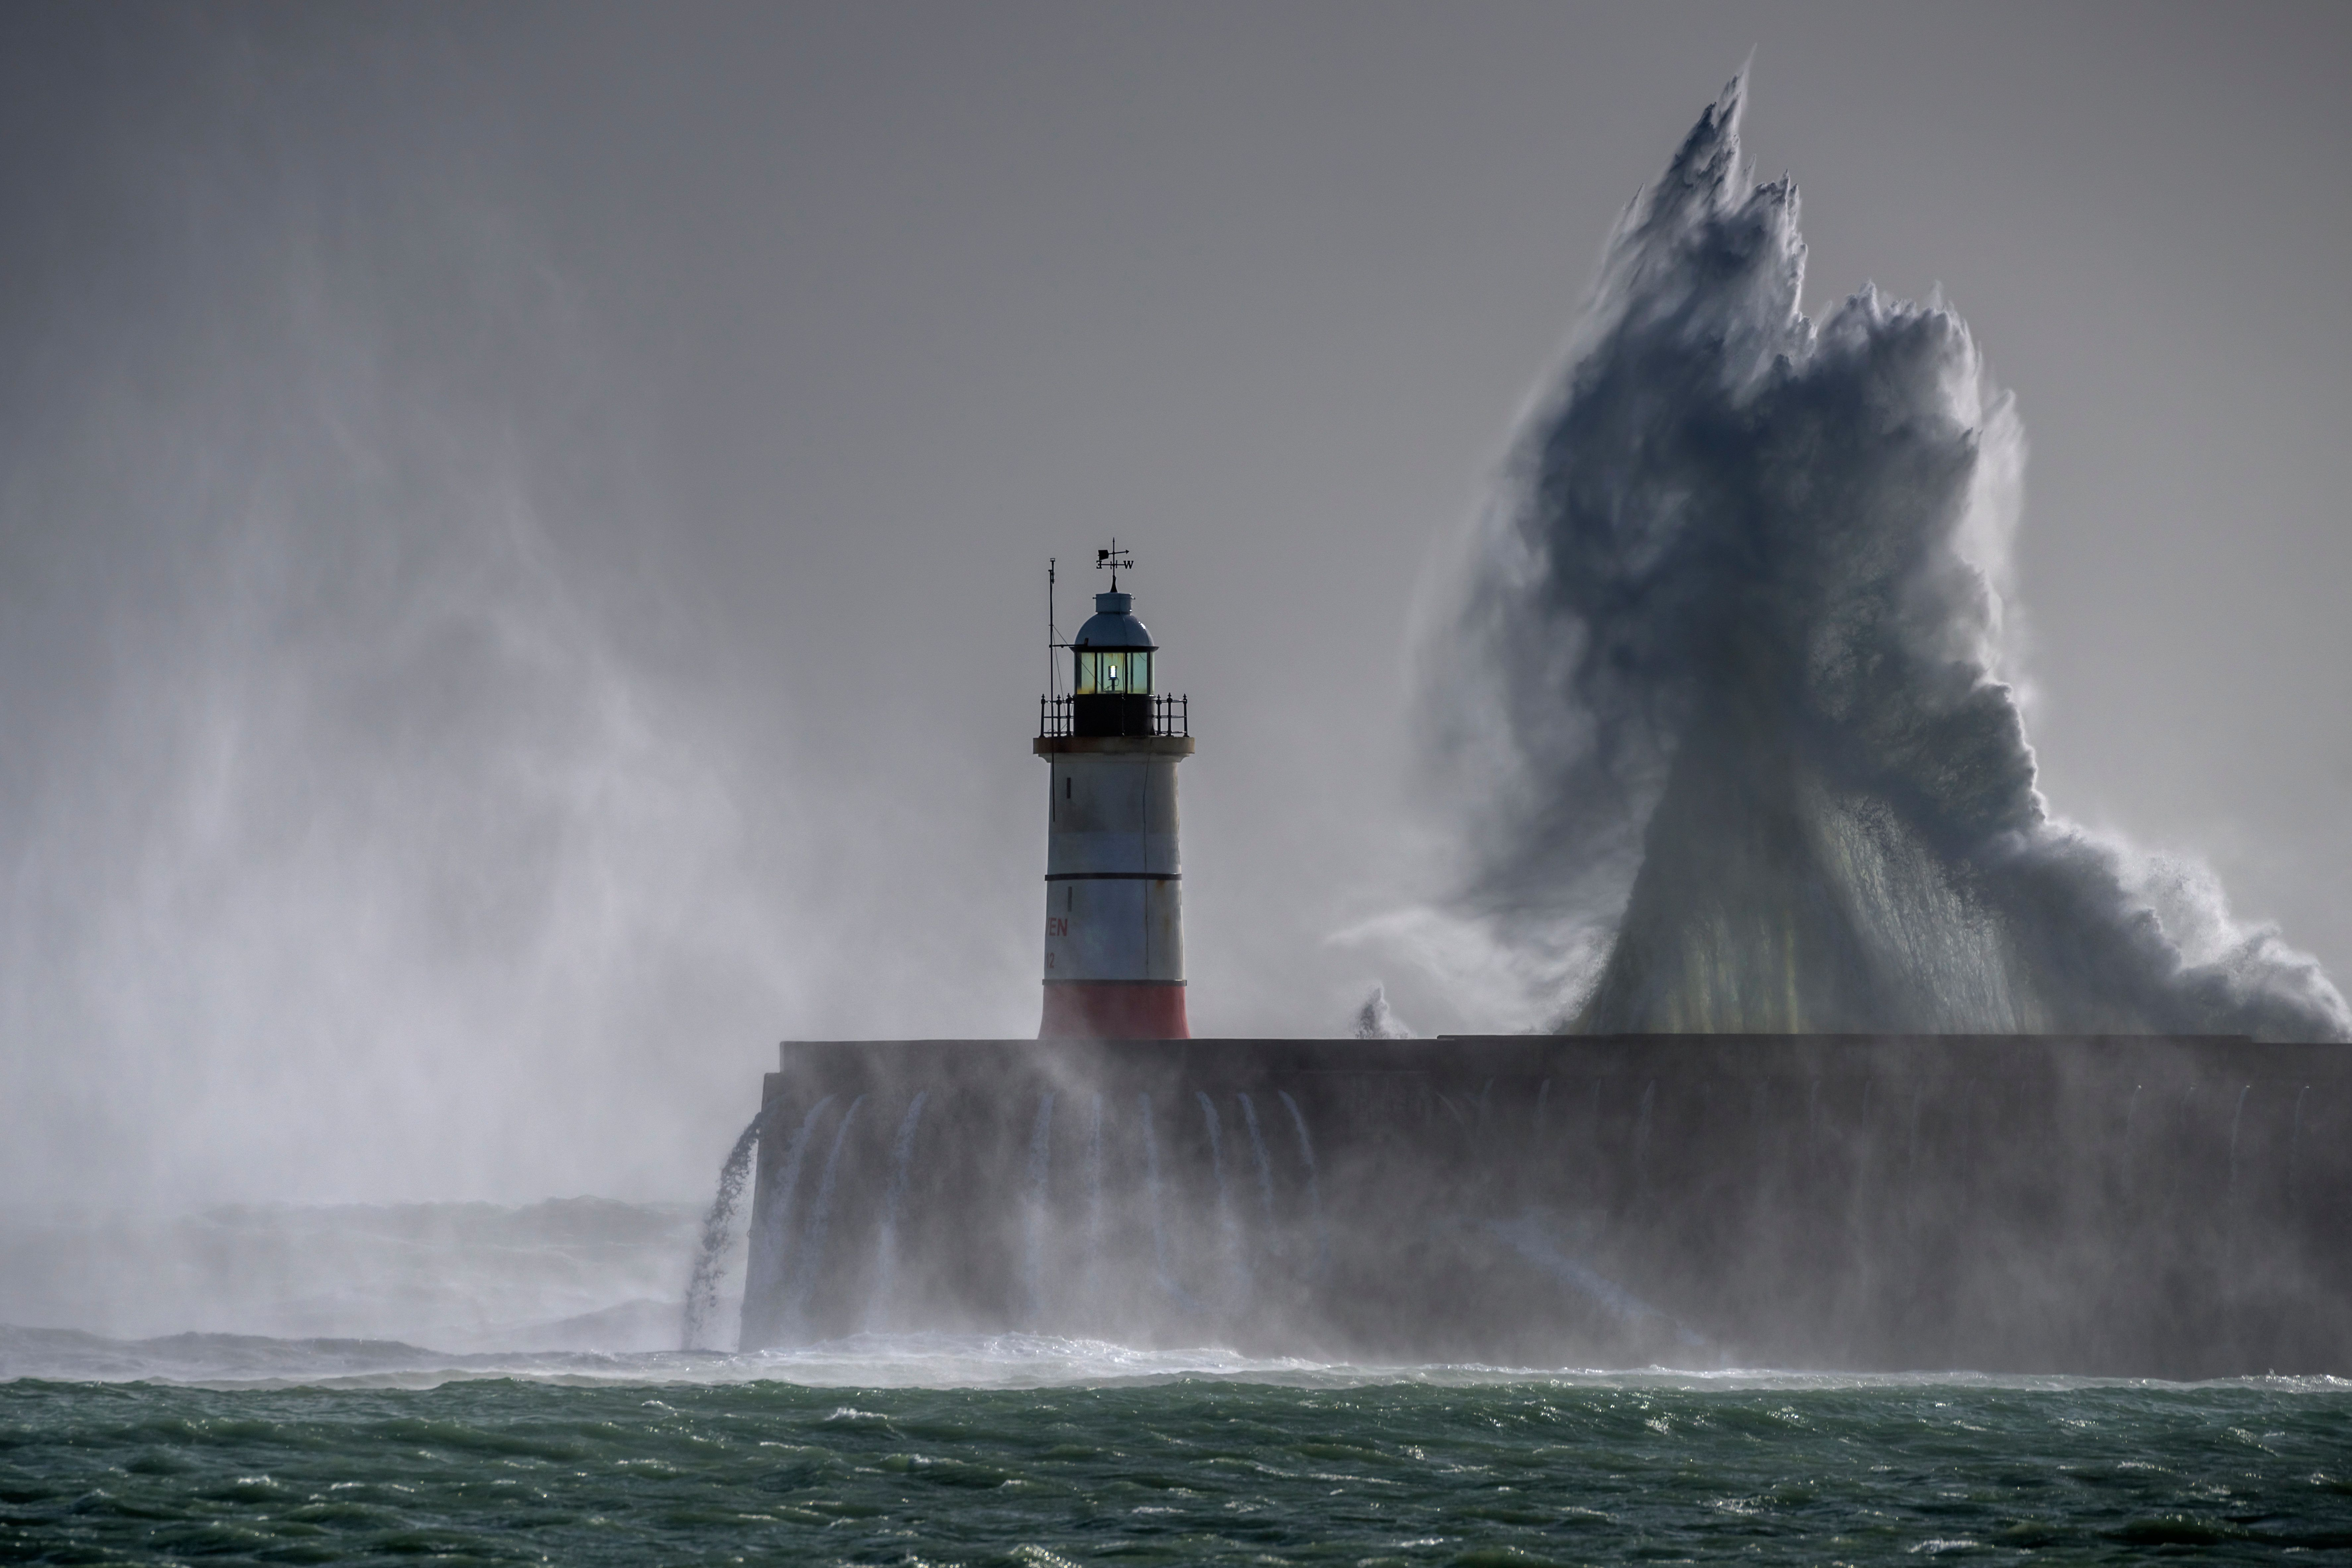 Storm Brian Causes Flooding And Travel Disruption In UK And